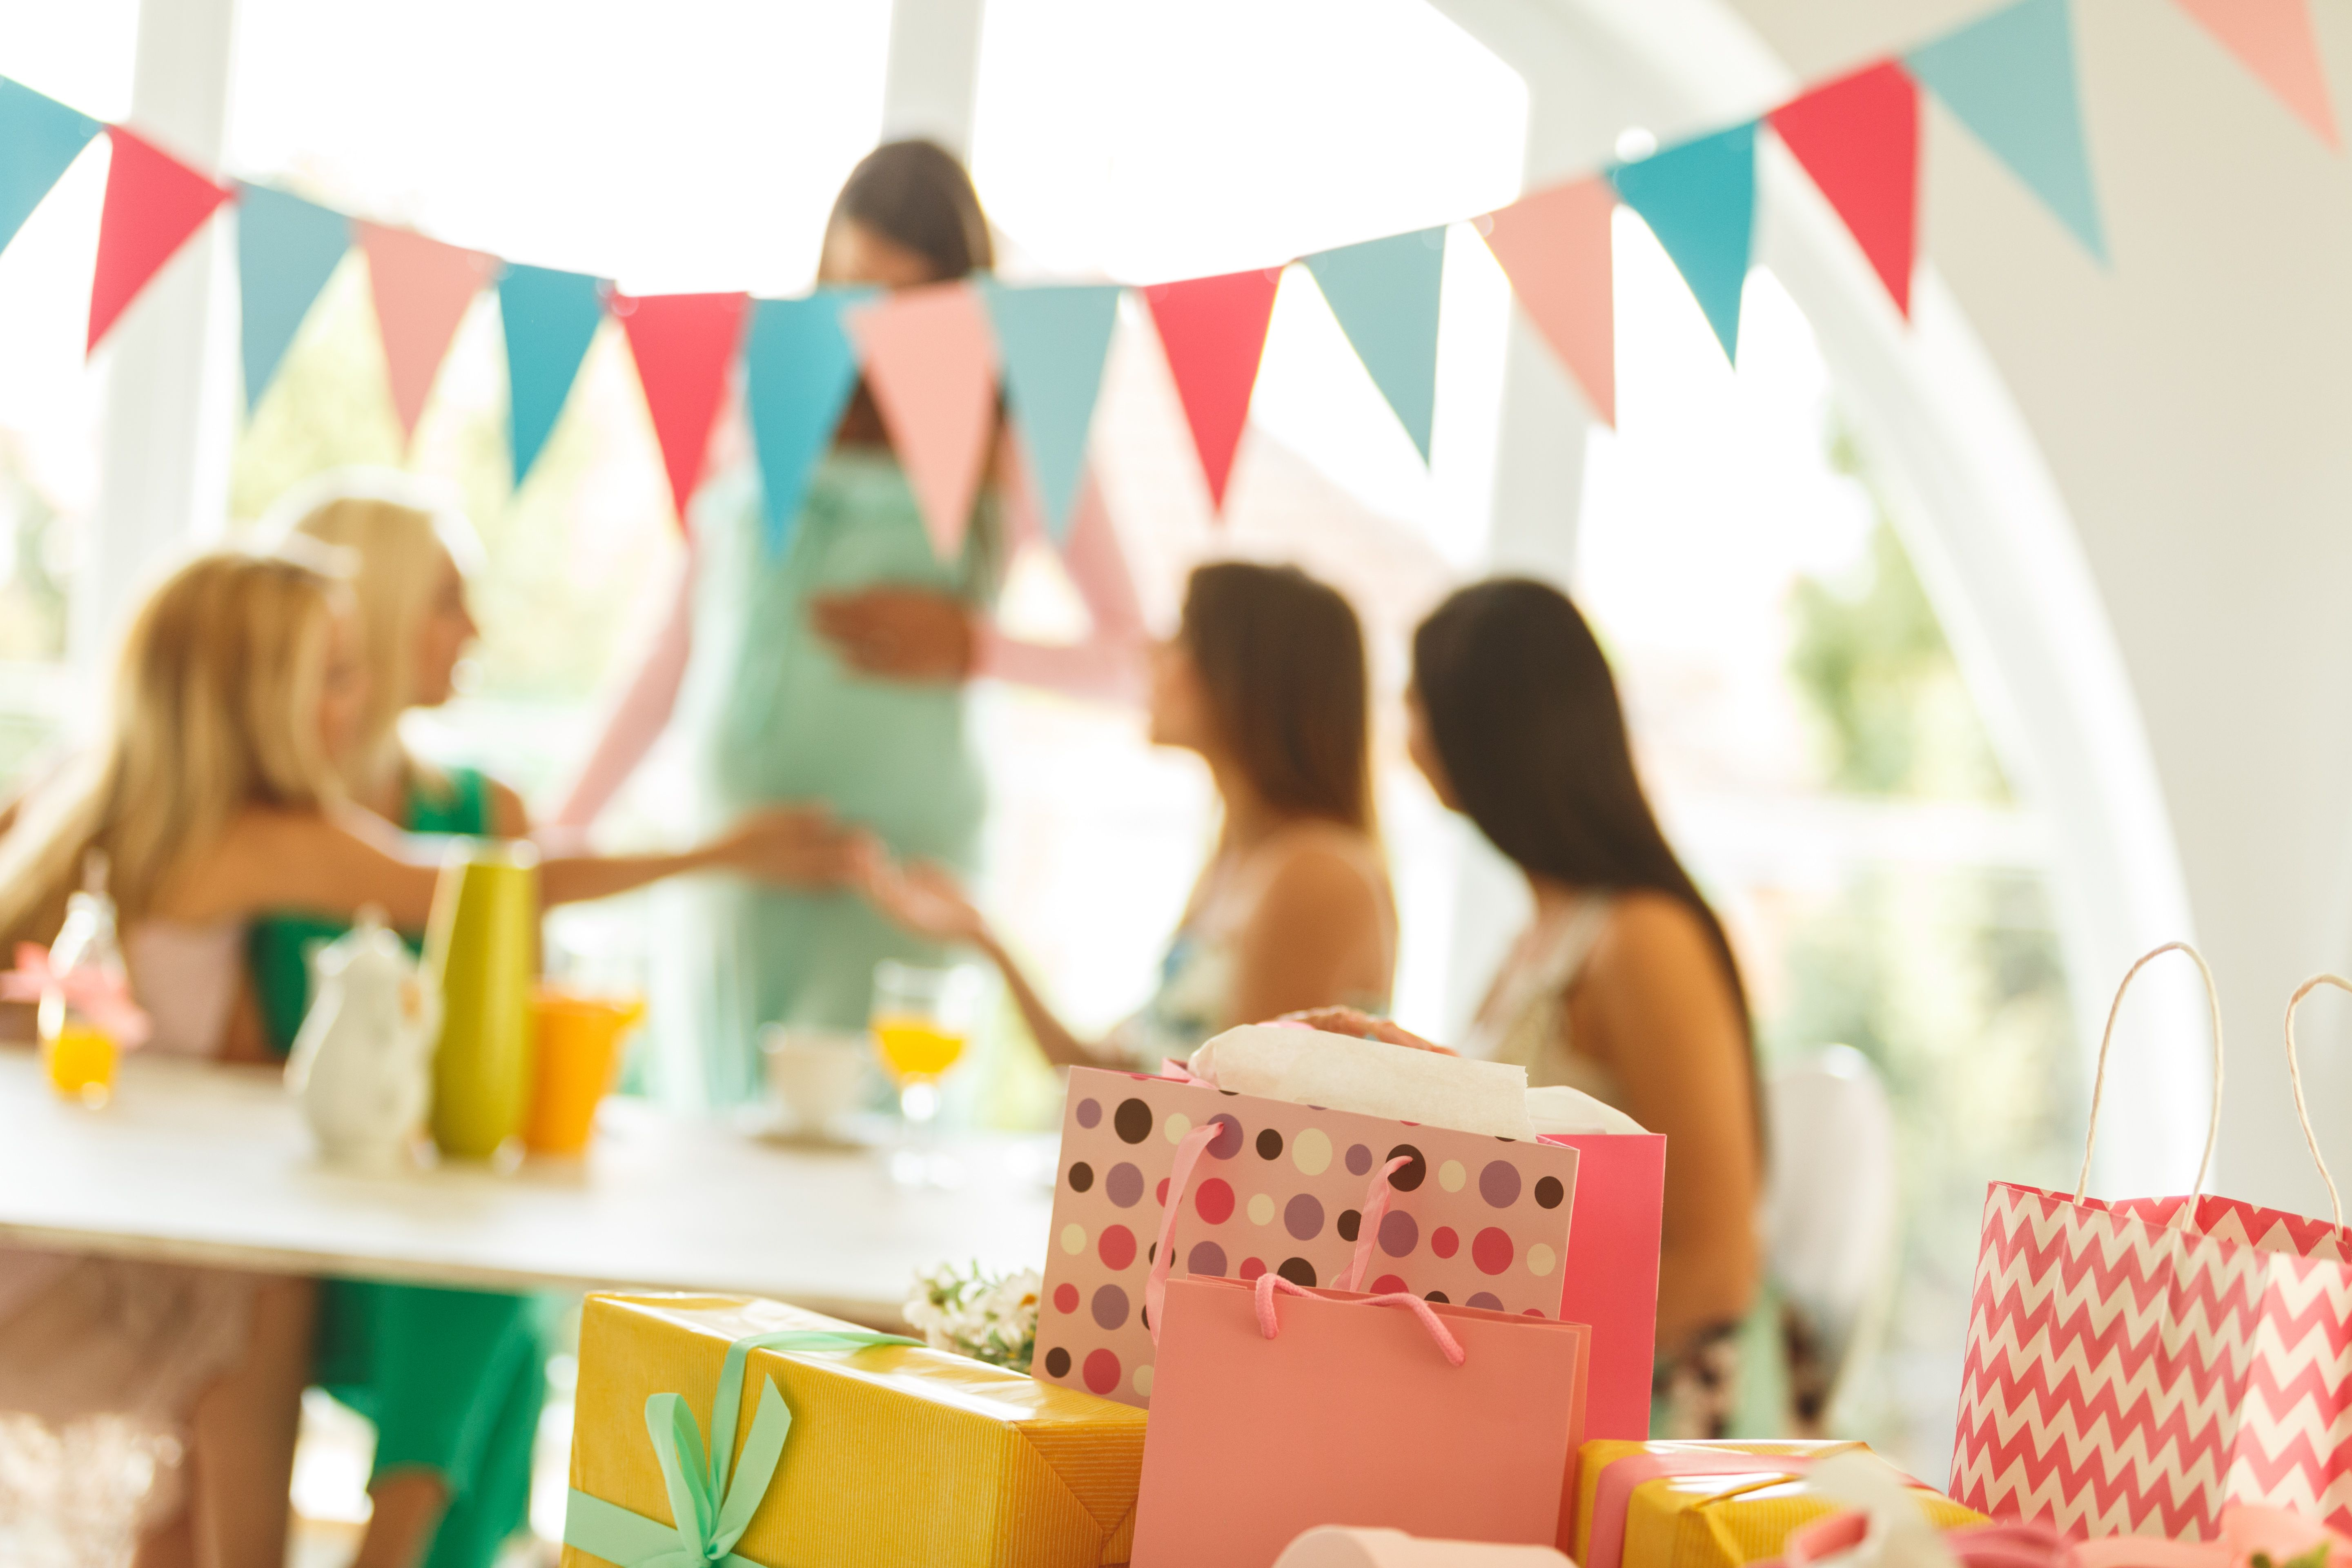 Presents at baby shower party with women celebrating in the background